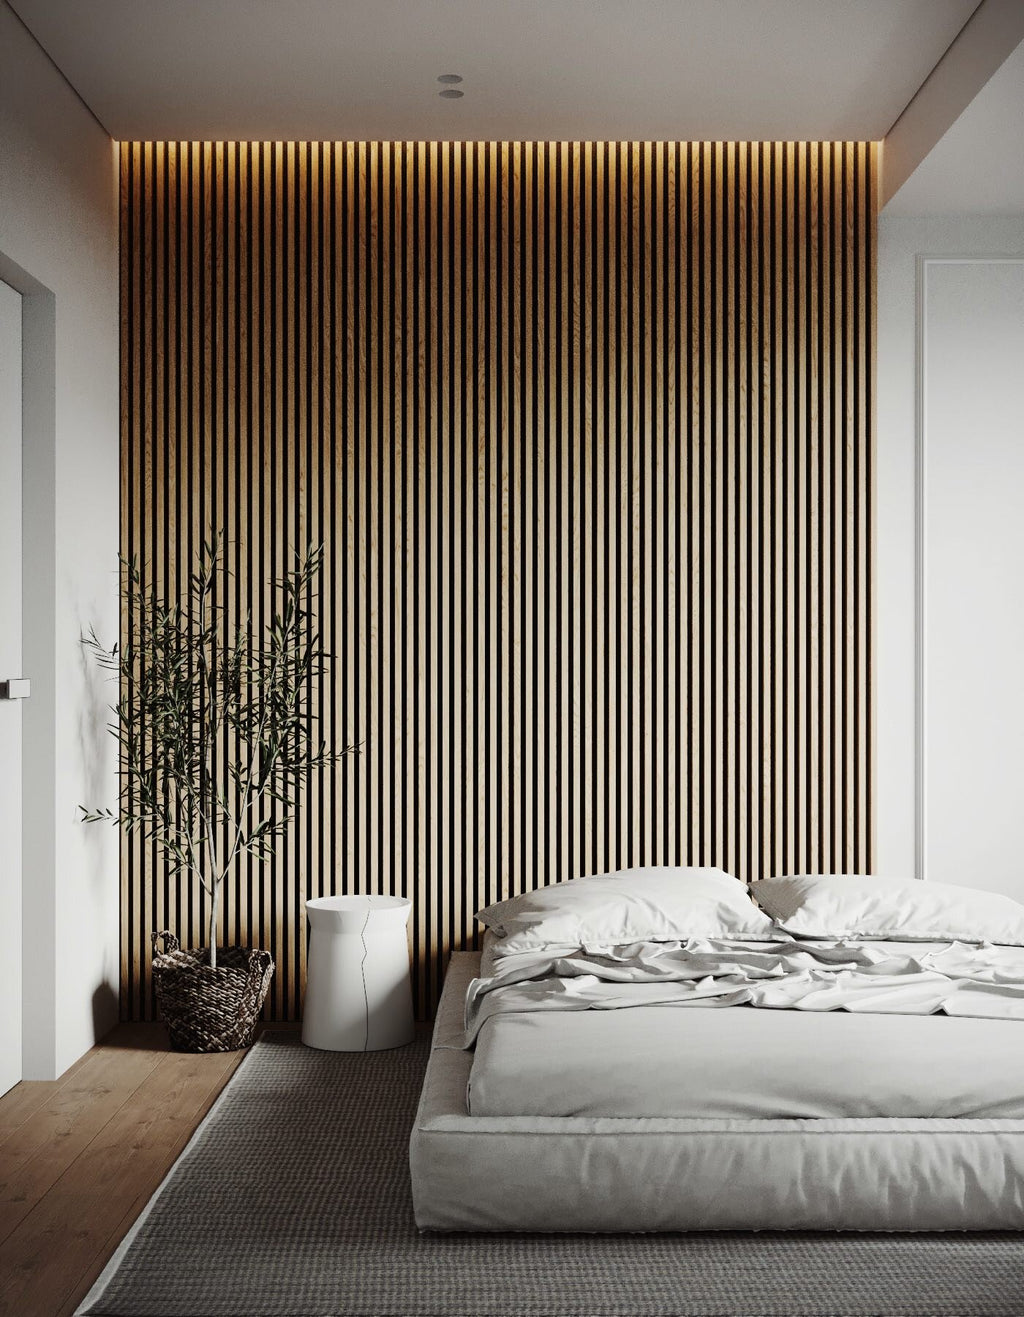 Upgrade Your Walls With This Trendy Multi-dimensional Look We're Seeing Everywhere